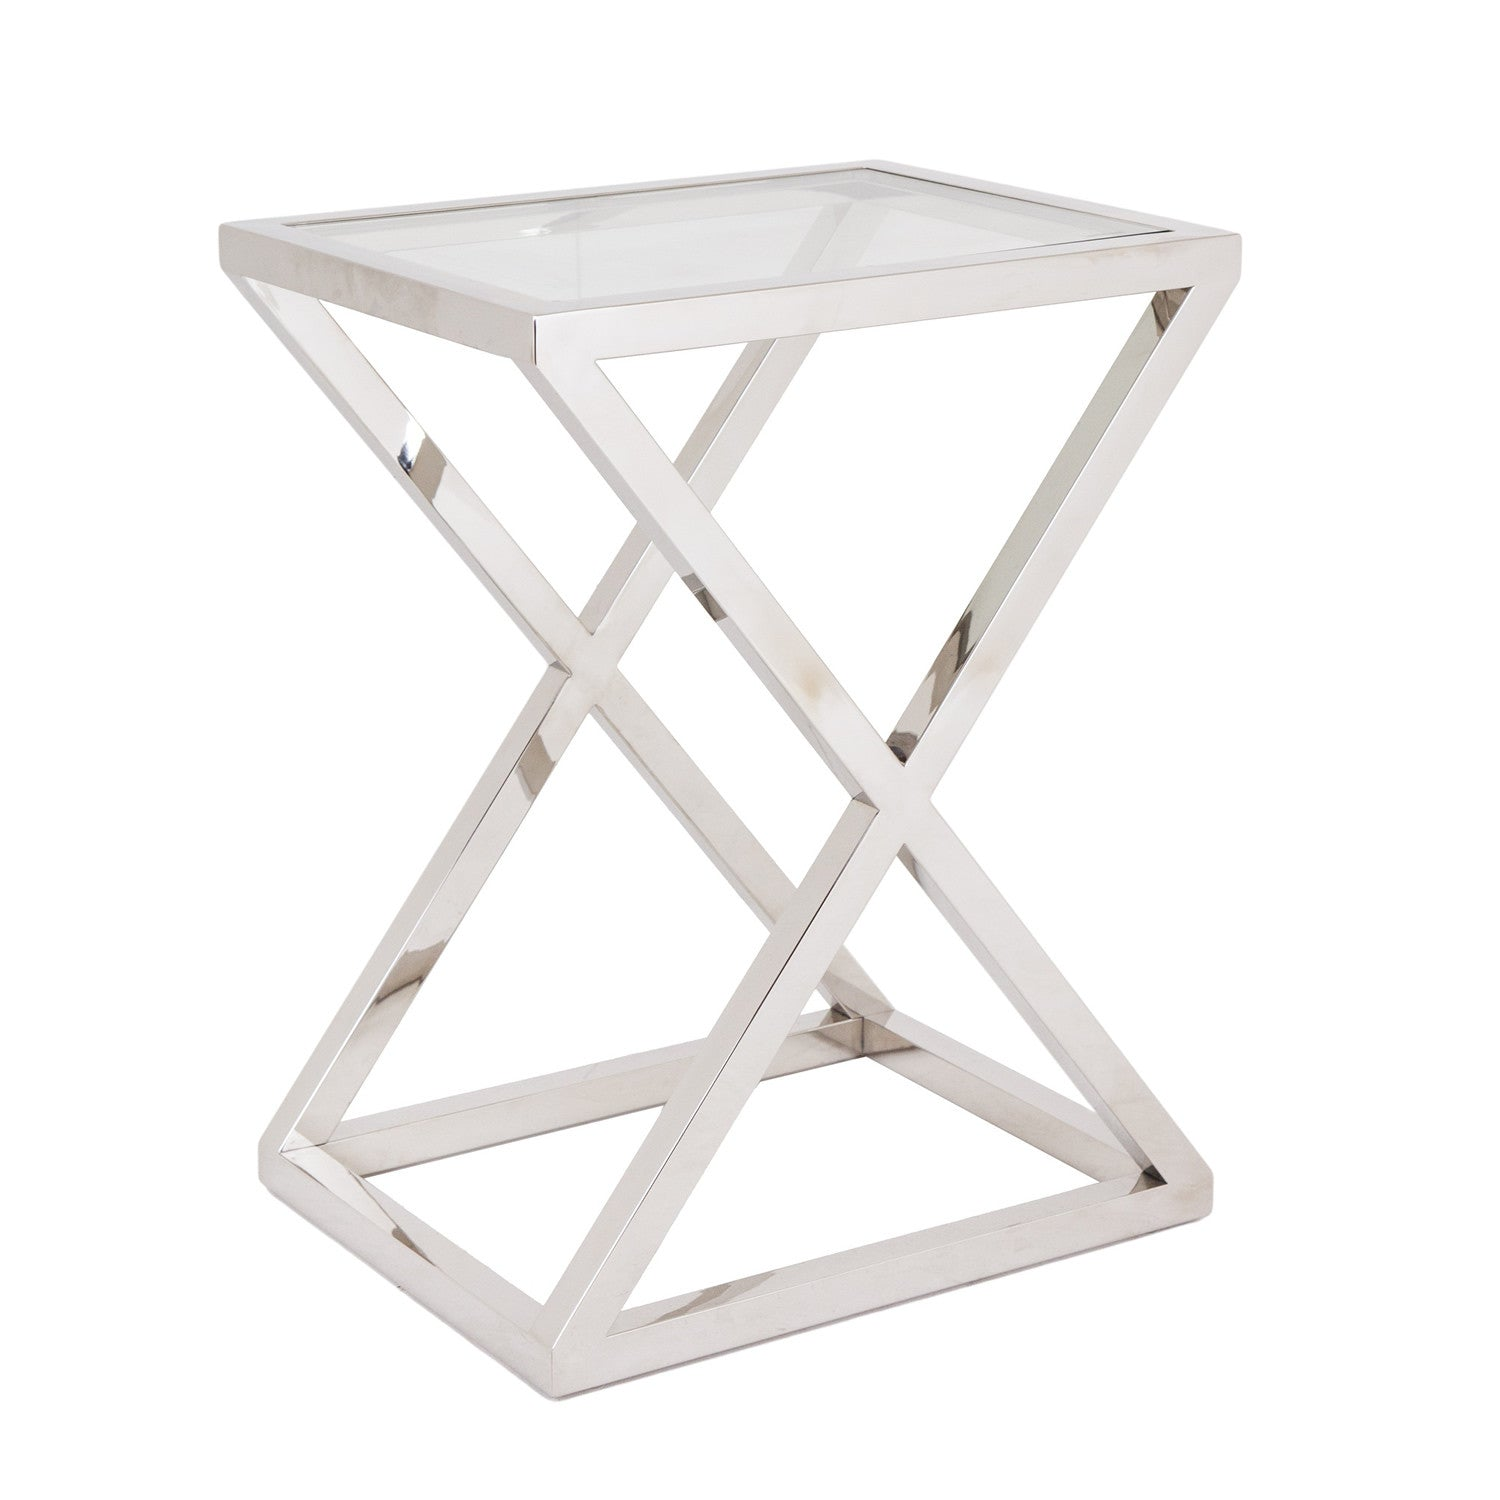 Rv astley nico stainless steel glass side table for Glass furniture